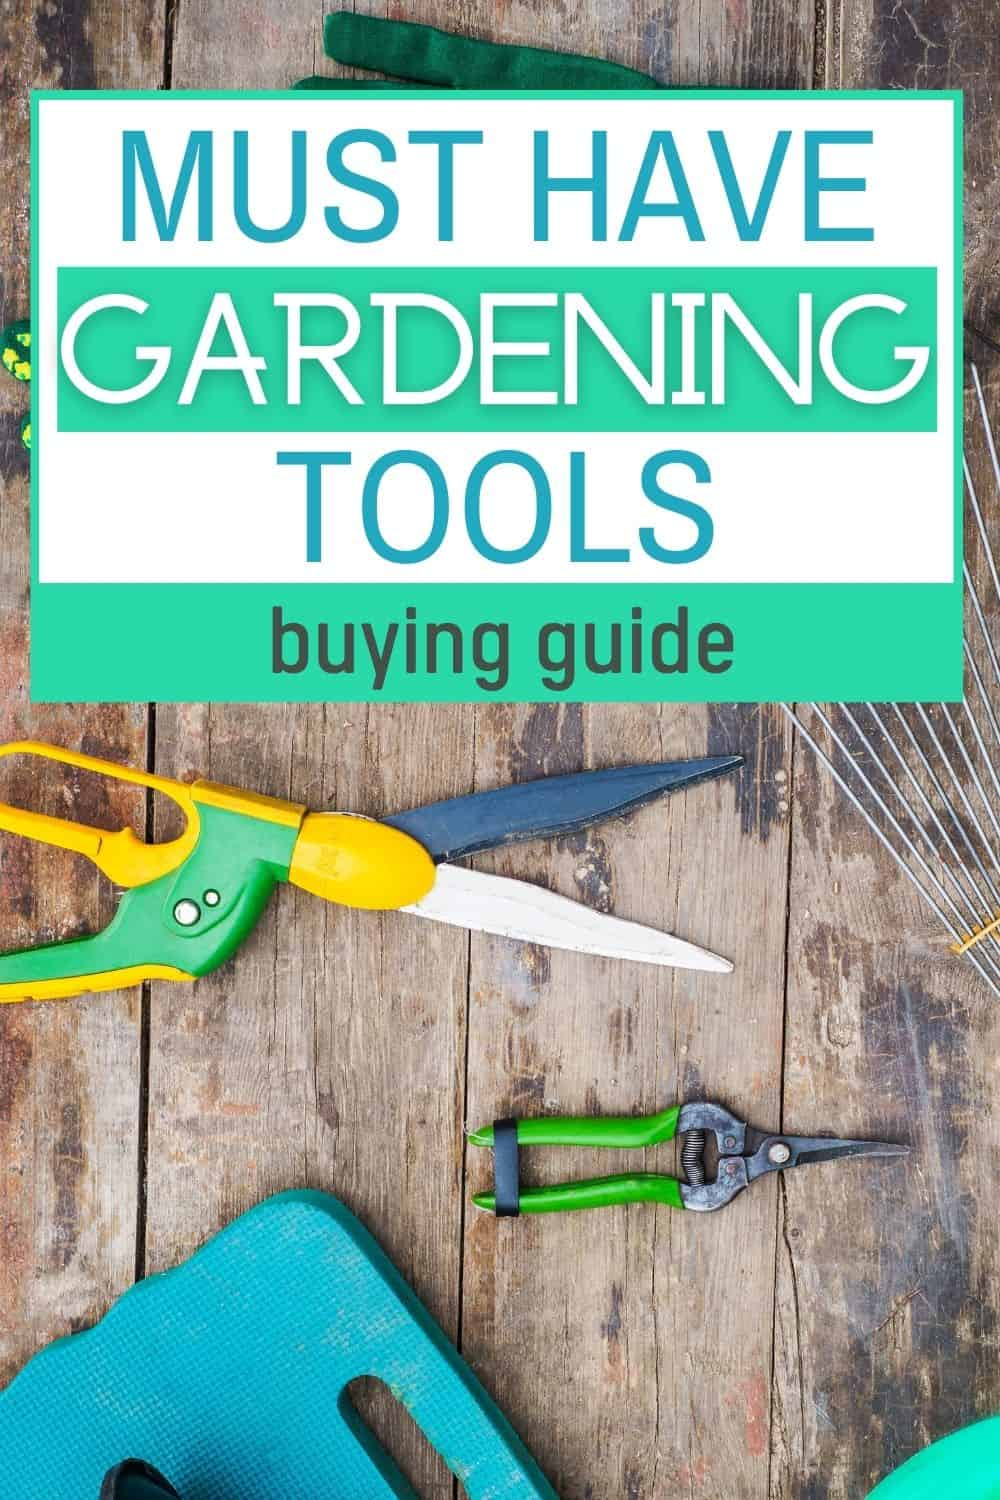 Must have gardening tools - buying guide